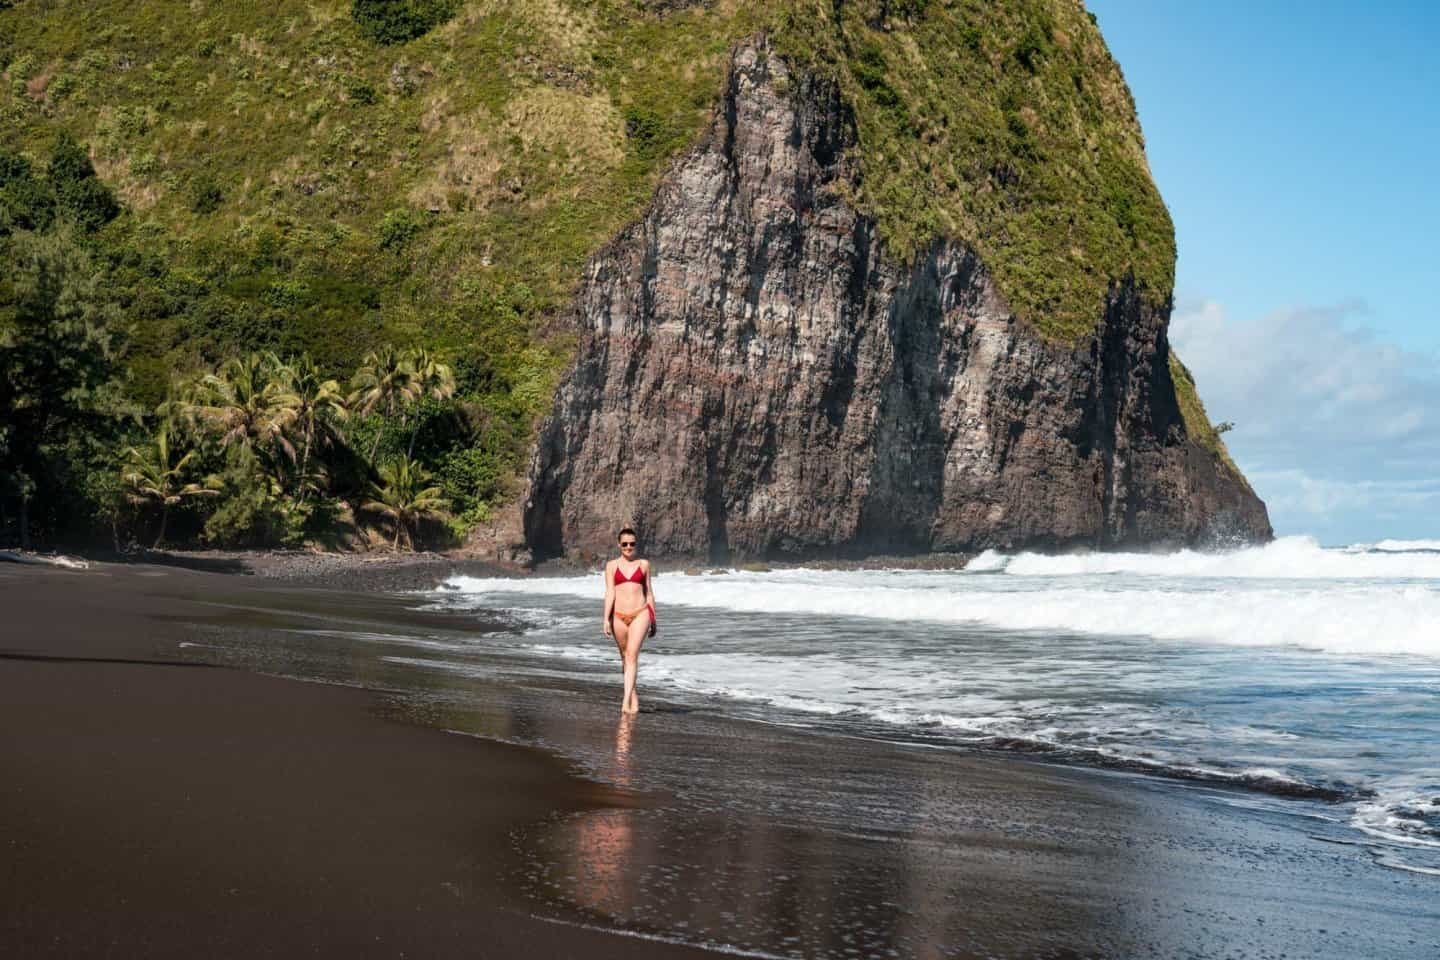 Big Island photography location: Sophie Clapton strolls along the black sand beach of the Waipio Valley.